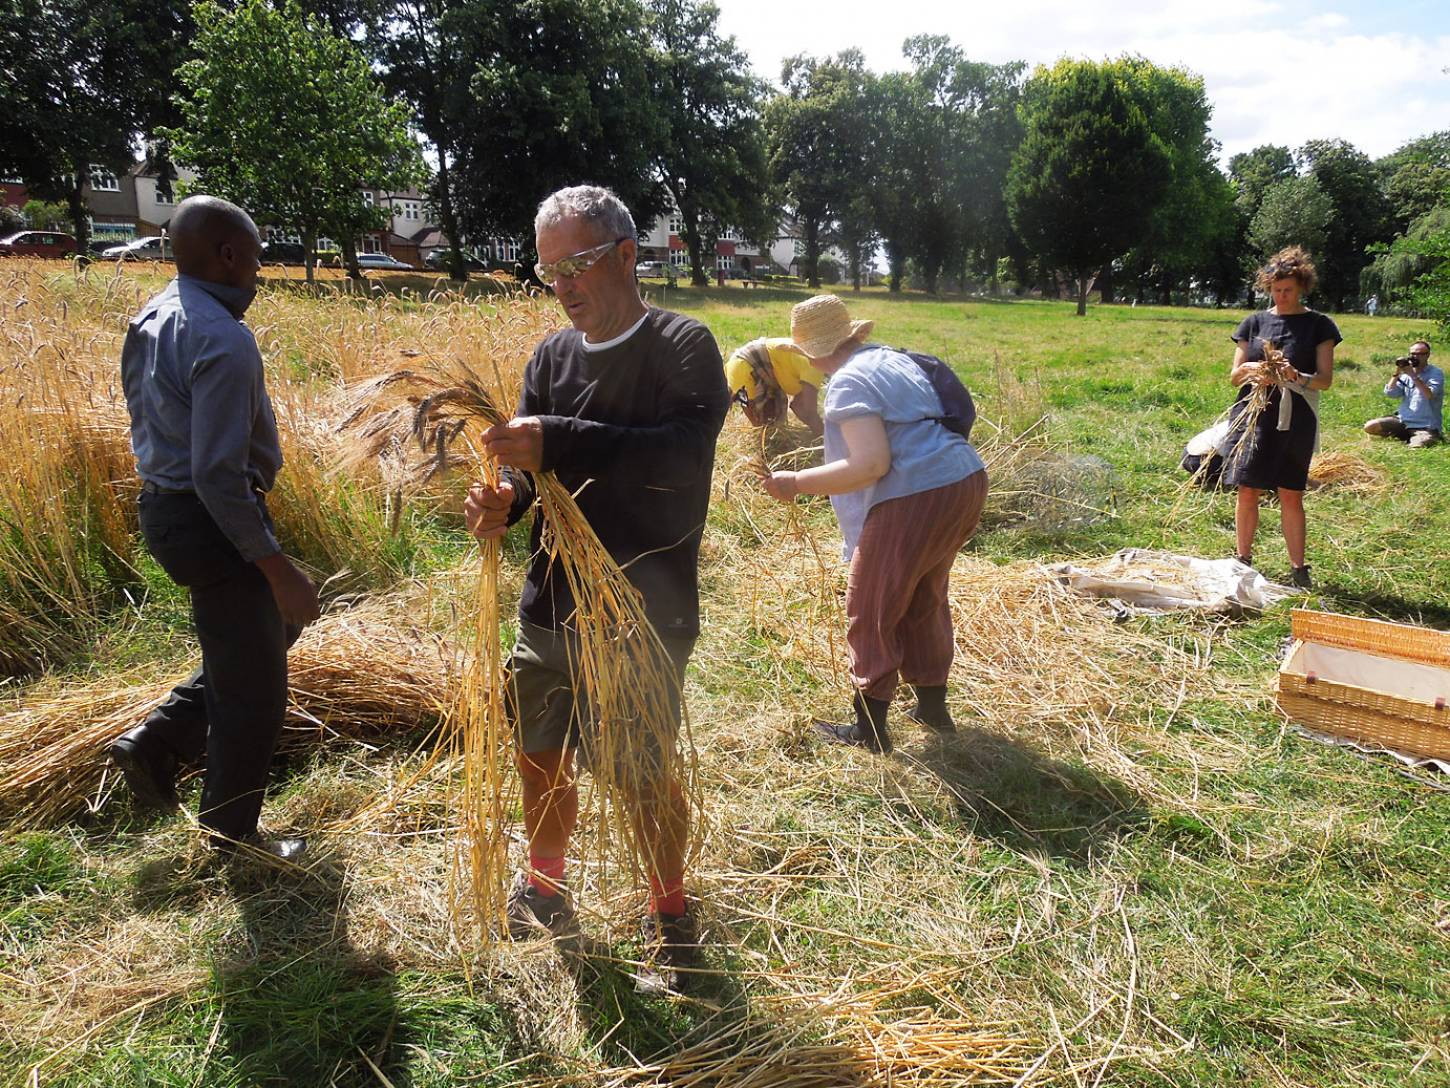 Ruskin Park harvest - 1:02pm&nbsp;8<sup>th</sup>&nbsp;Aug.&nbsp;'16